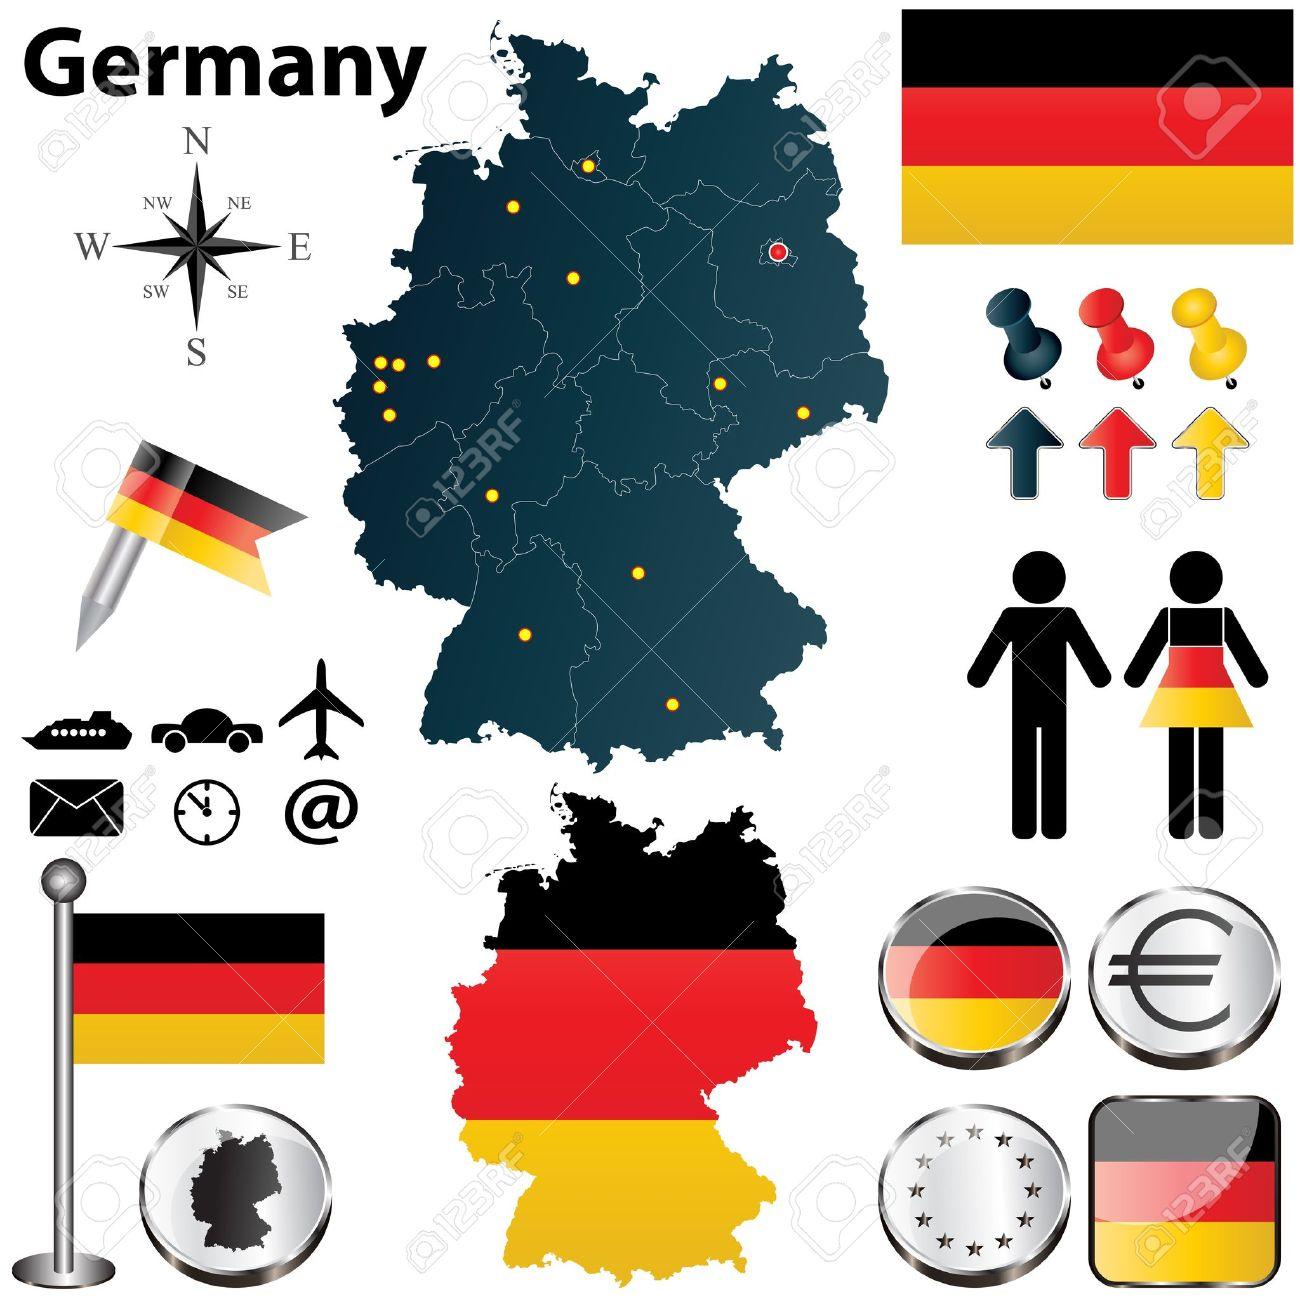 235 germany eagle stock vector illustration and royalty free